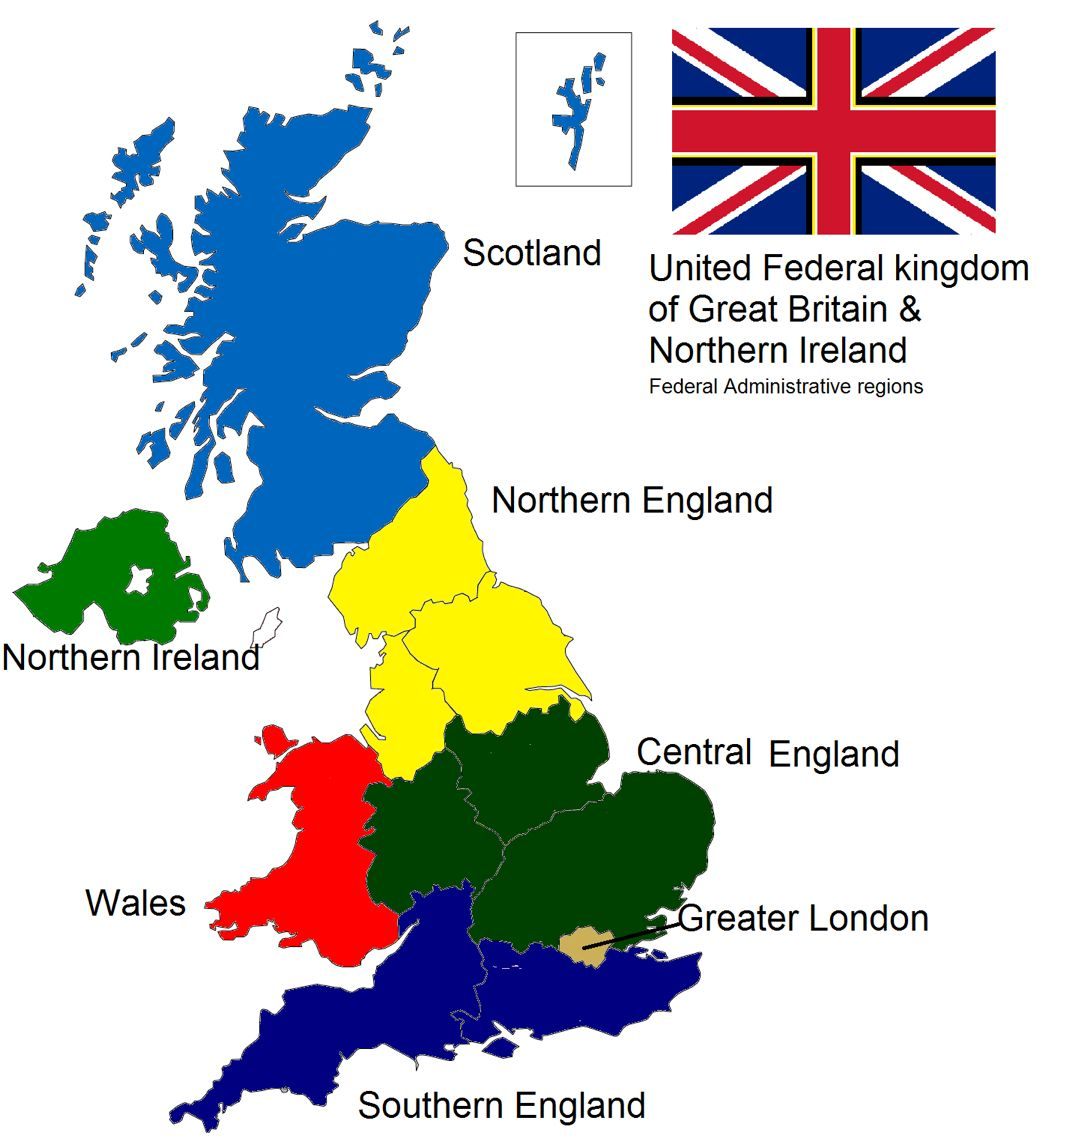 England is a country it is the largest of the four